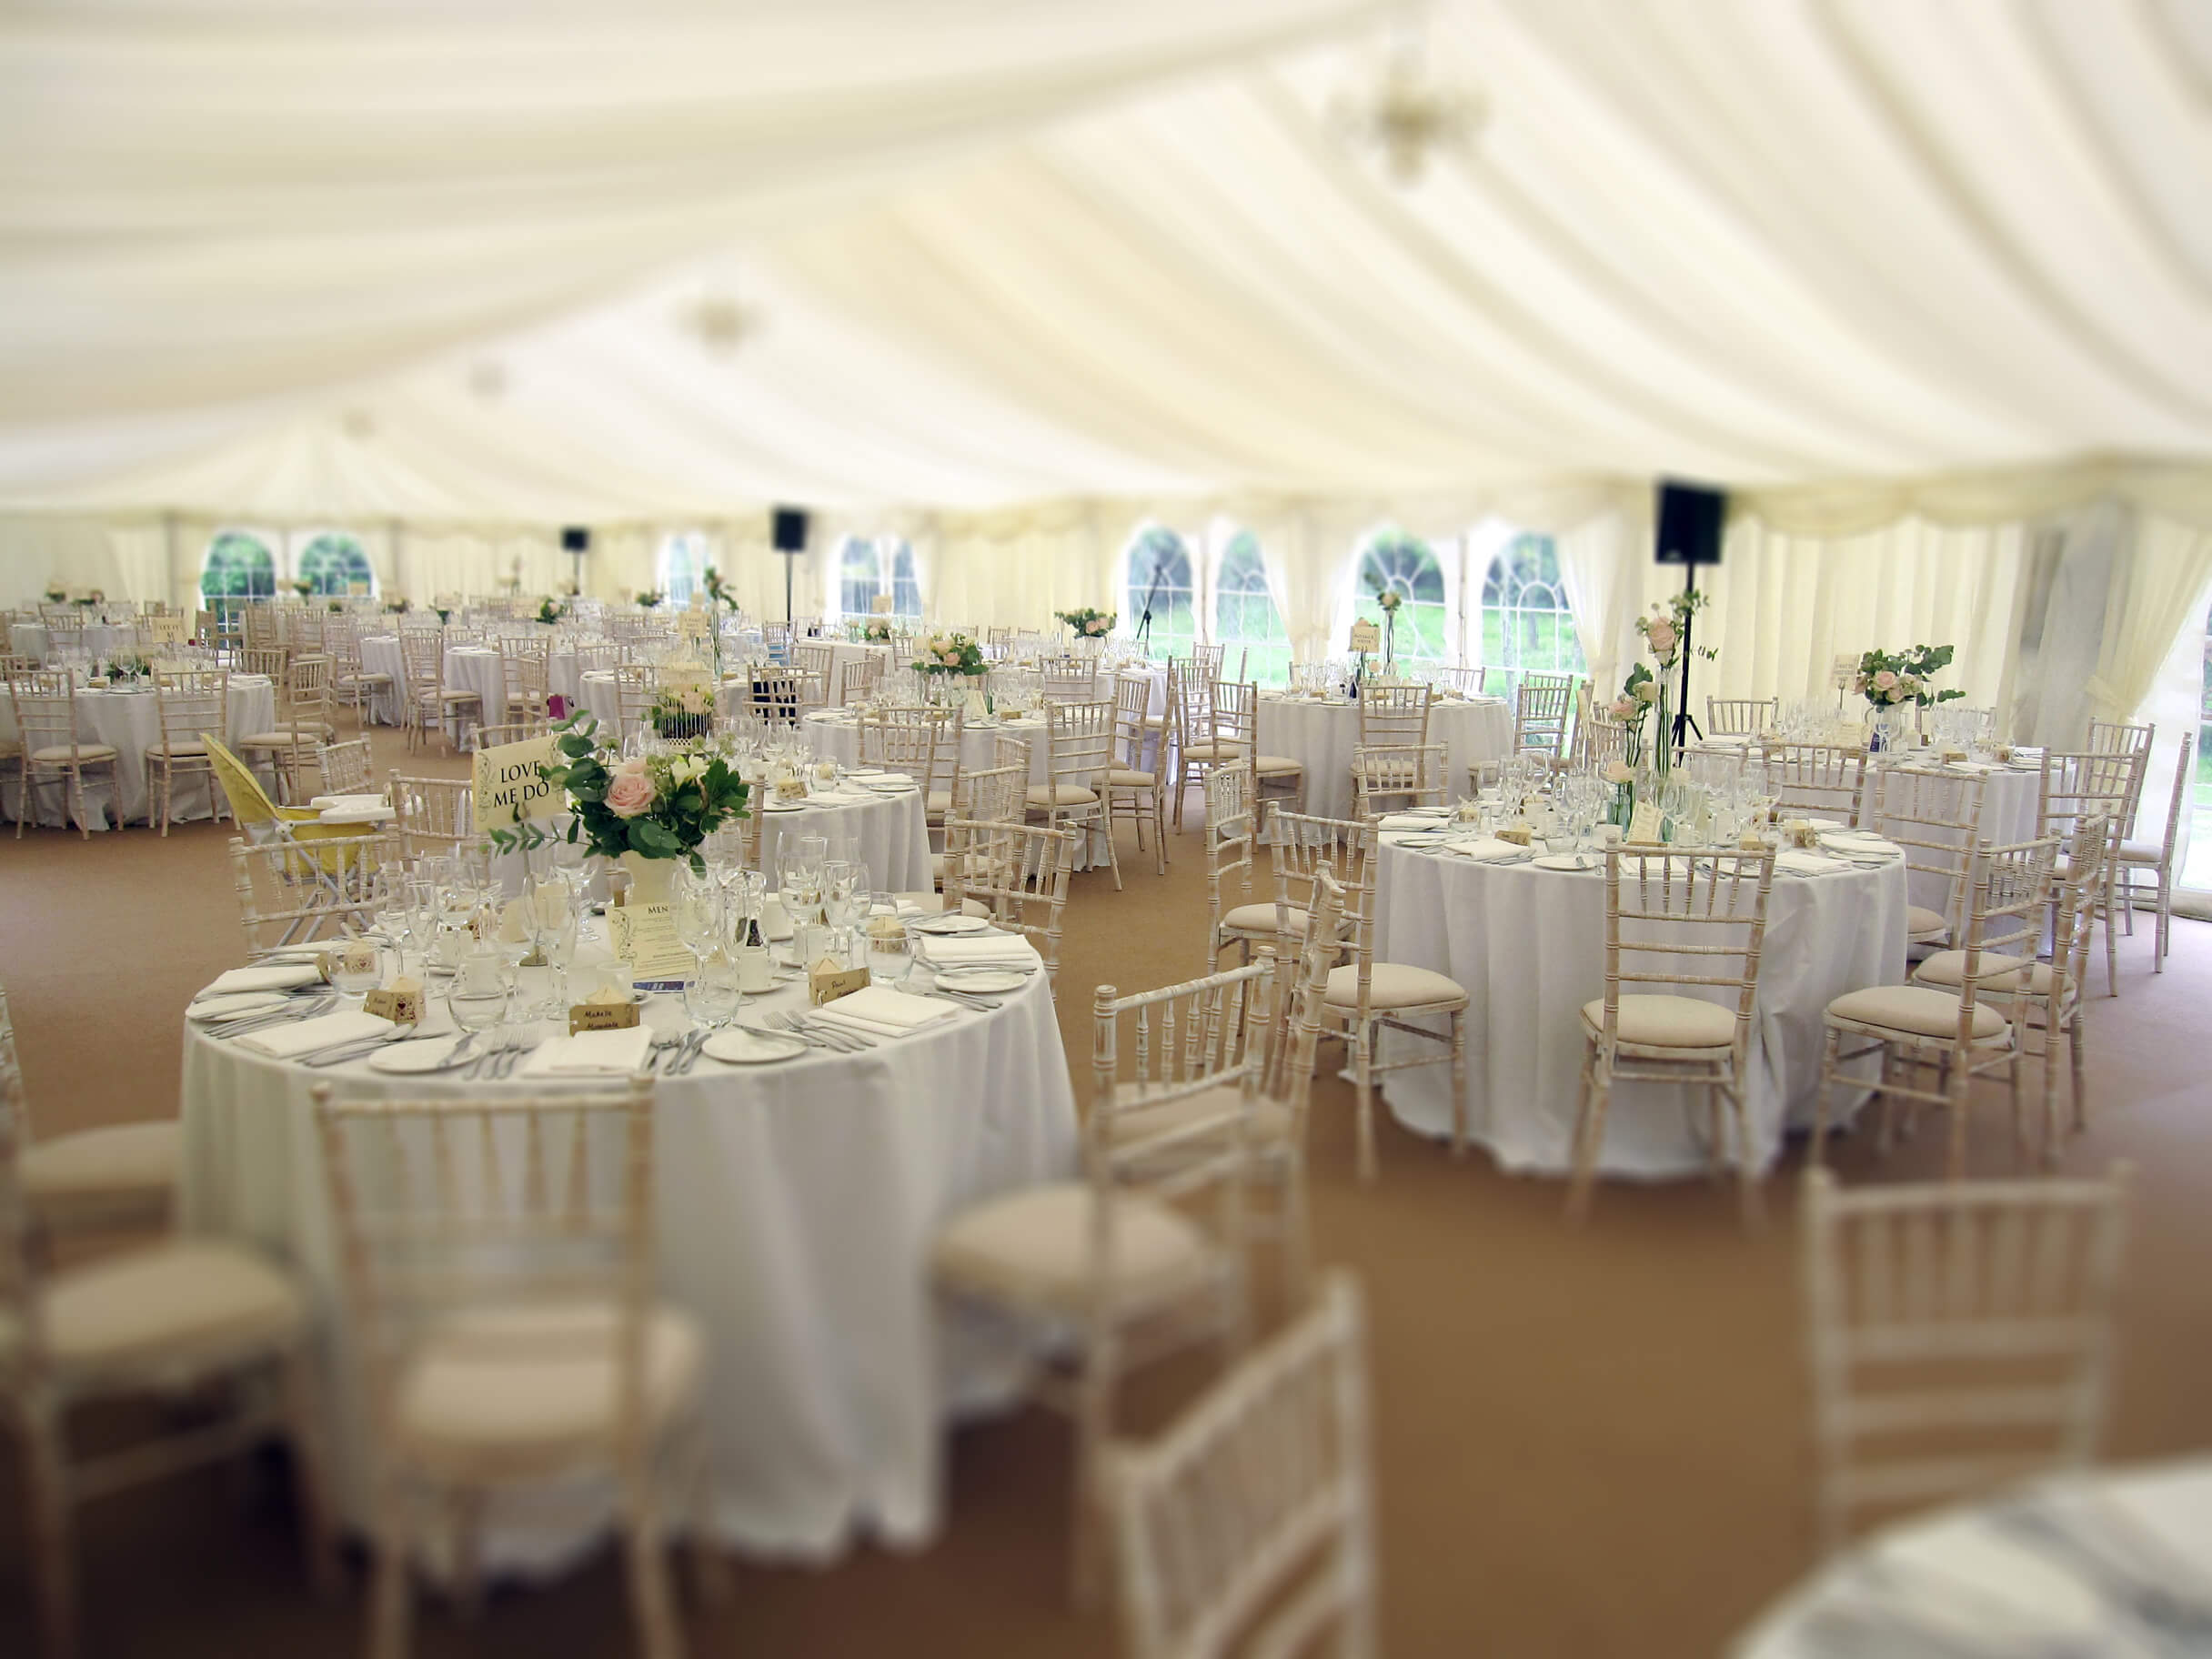 Marquee with Tables and Chairs